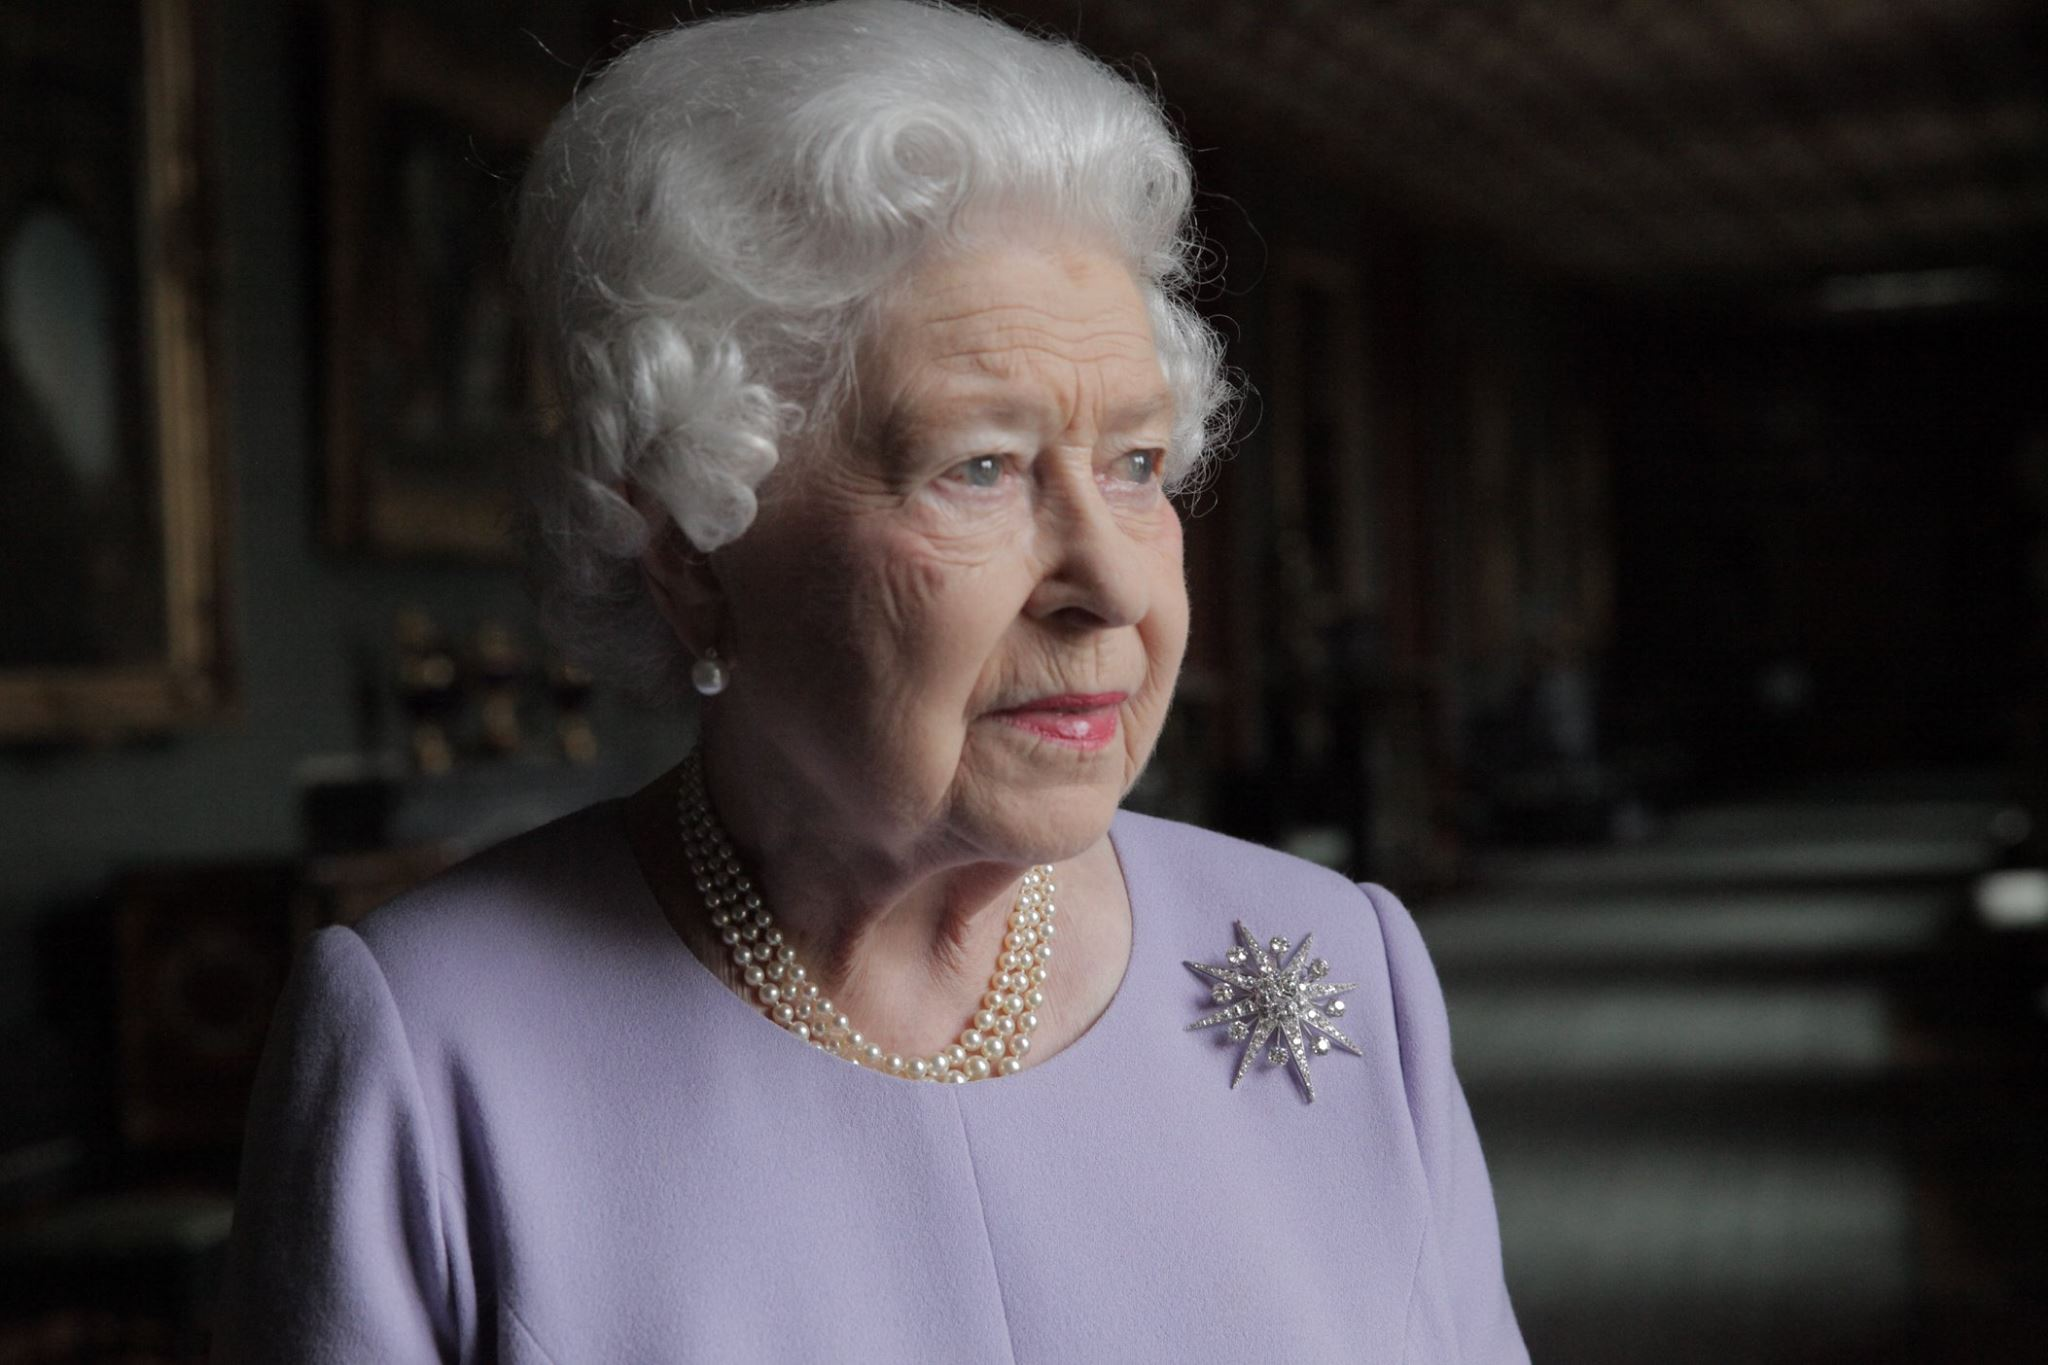 """In the video, an official introduced the queen to D'Orsi and explains that the officer was in charge of policing for the visit. The queen responded: """"Oh! Bad luck."""" (Photo: The British Monarchy/Facebook)"""